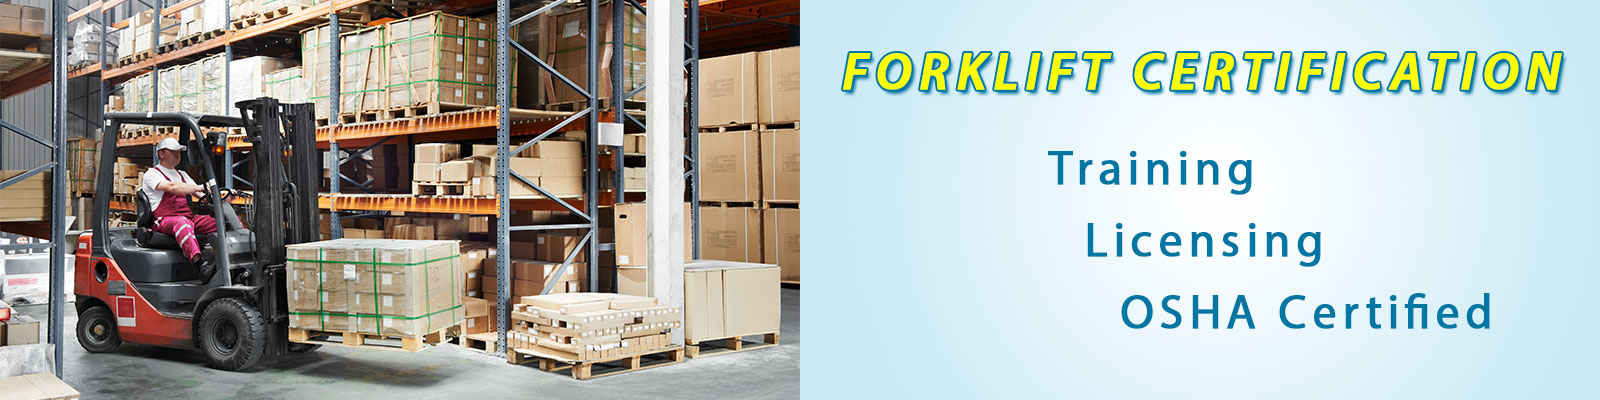 forklift training nj